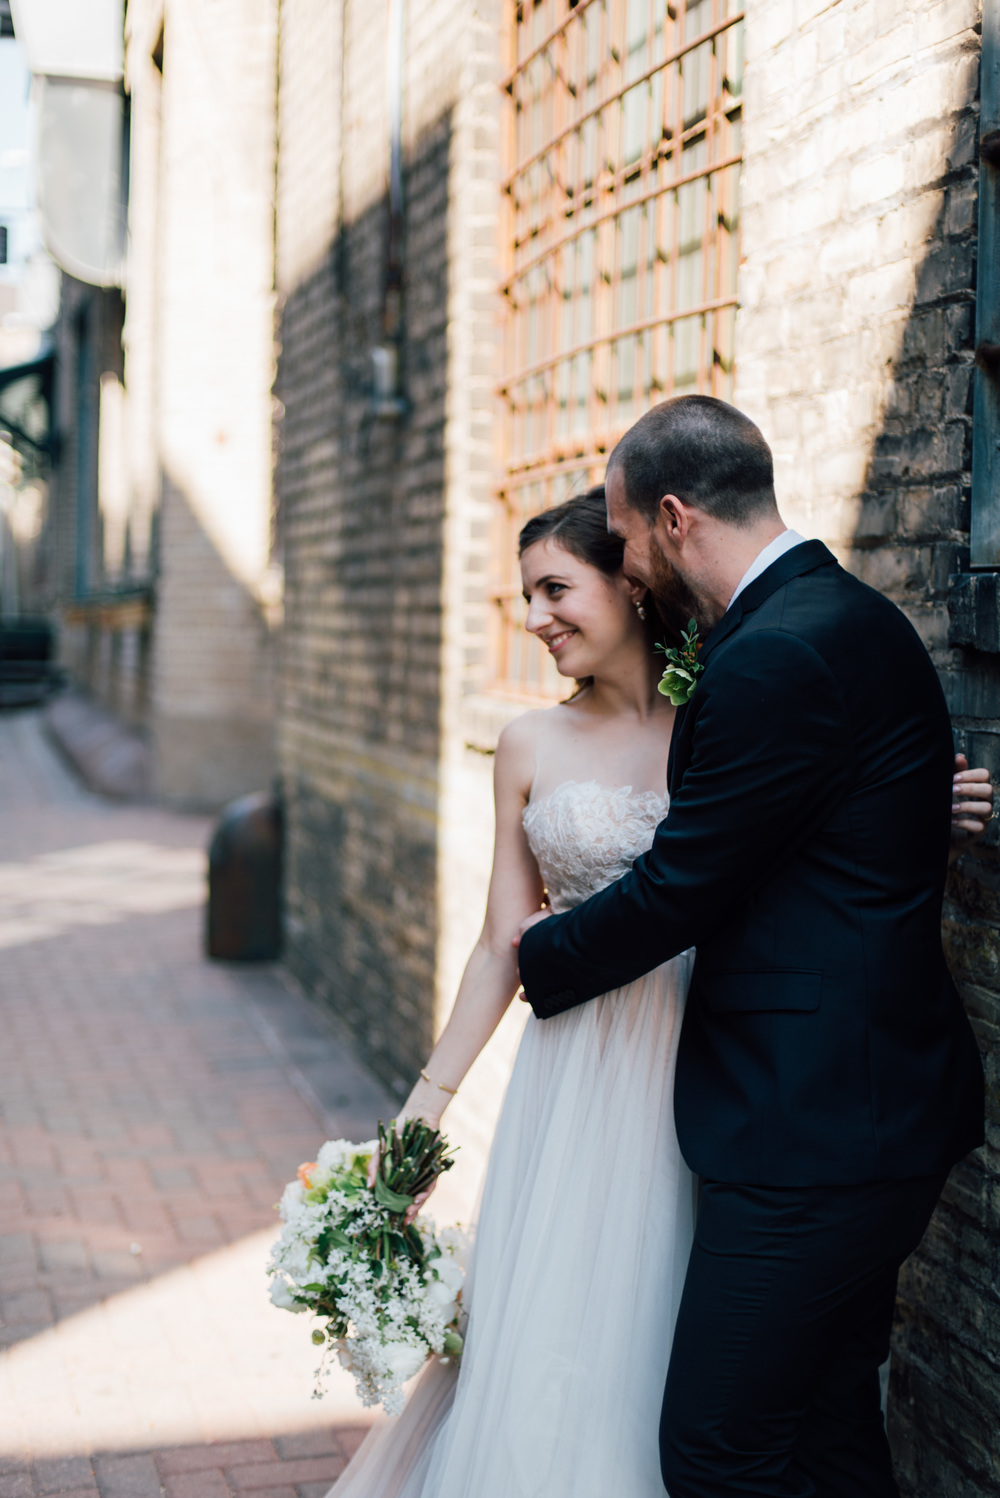 Gorgeous Twin Cities Wedding Portraiture I NYLONSADDLE Photography I Capturing stories through images exactly as they should be I Candid, honest, original photographs